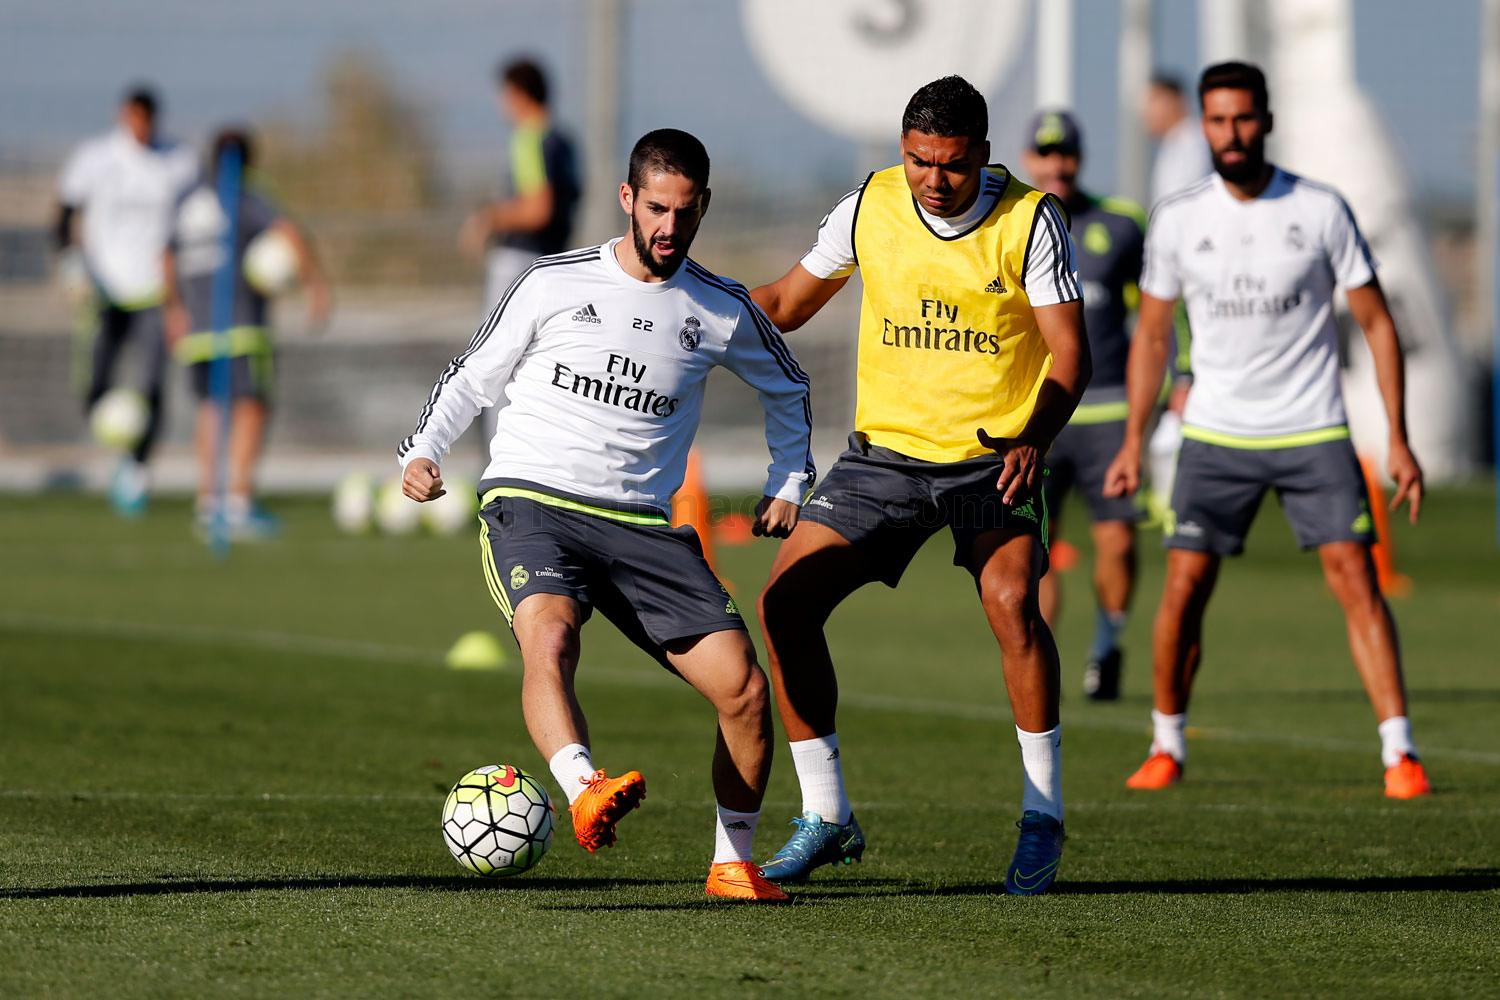 Real Madrid - Entrenamiento del Real Madrid - 14-10-2015